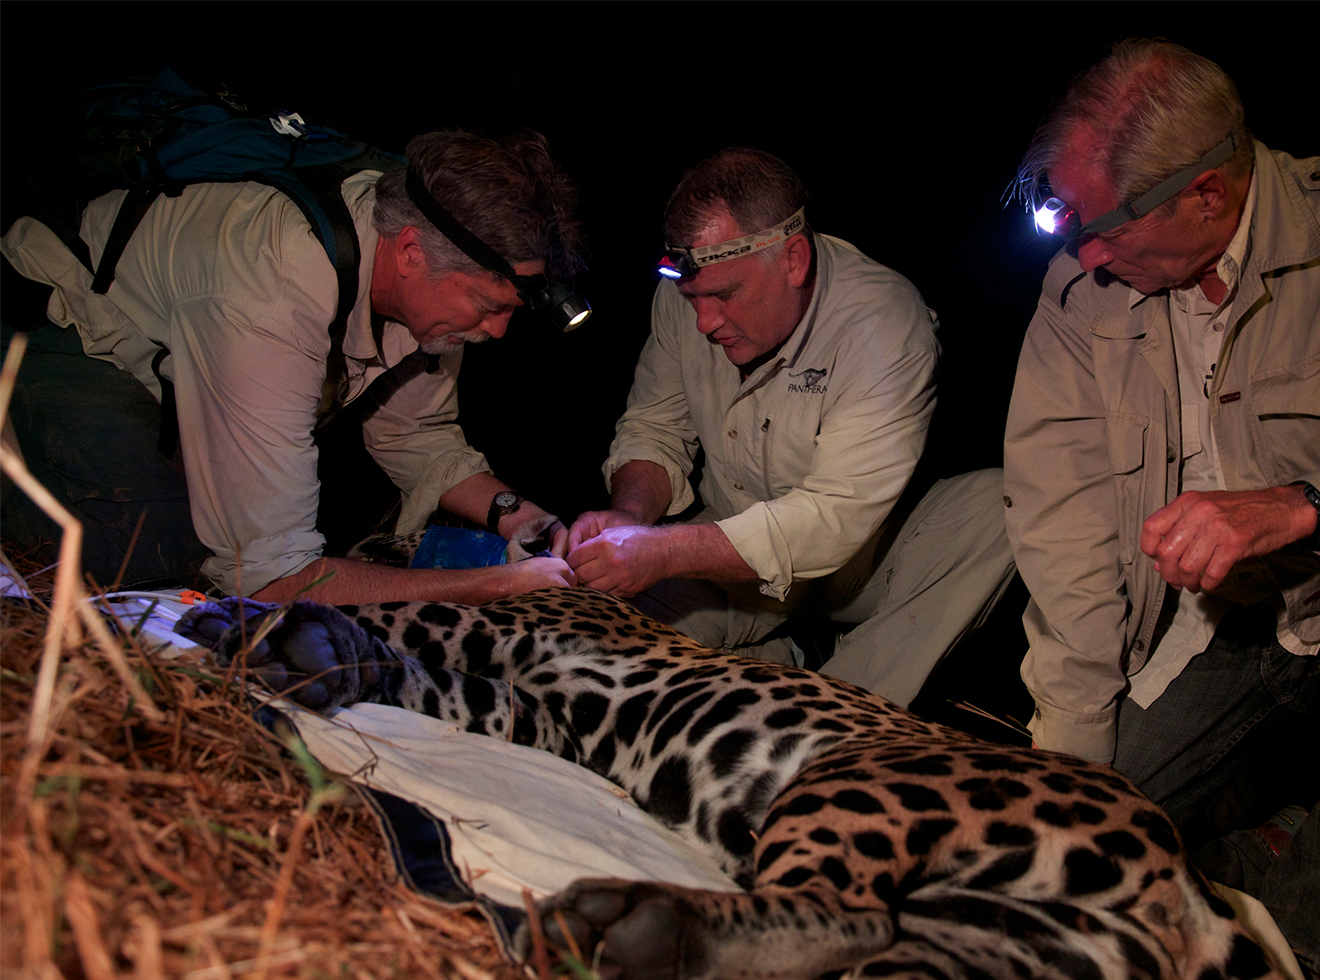 Collaring a jaguar in Brazil